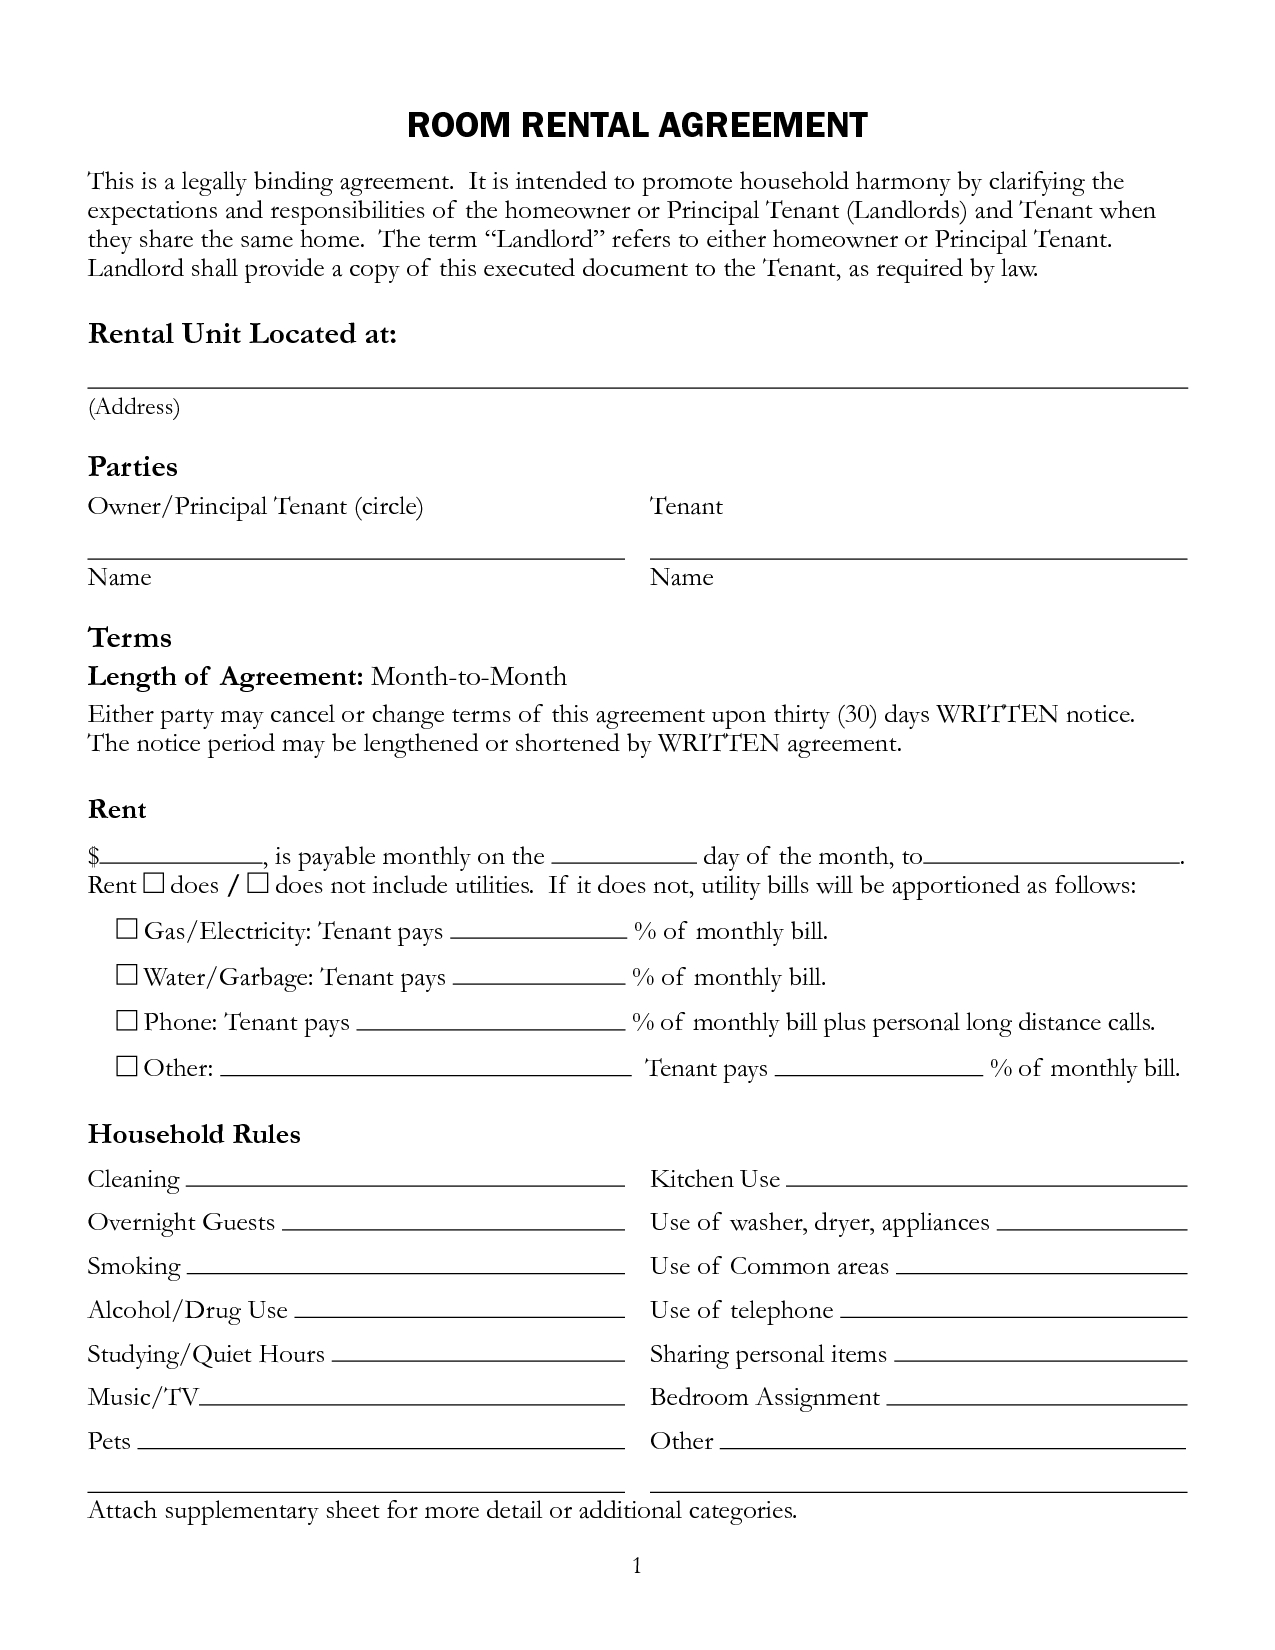 Free Printable Rental Lease Agreement Form Template  Bagnas With Commercial Kitchen Rental Agreement Template